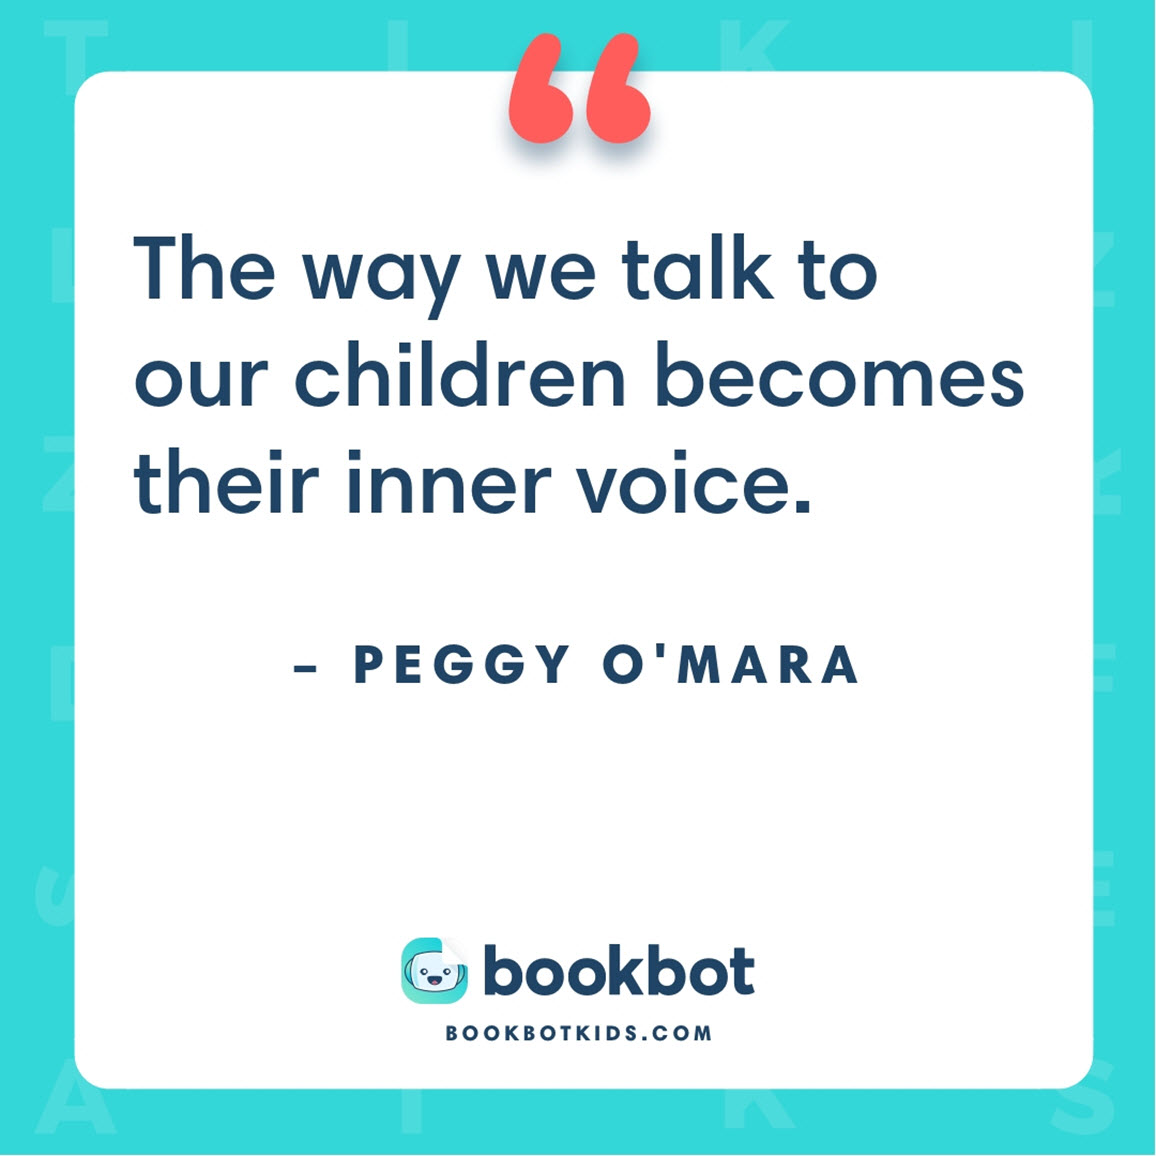 The way we talk to our children becomes their inner voice. – Peggy O'Mara